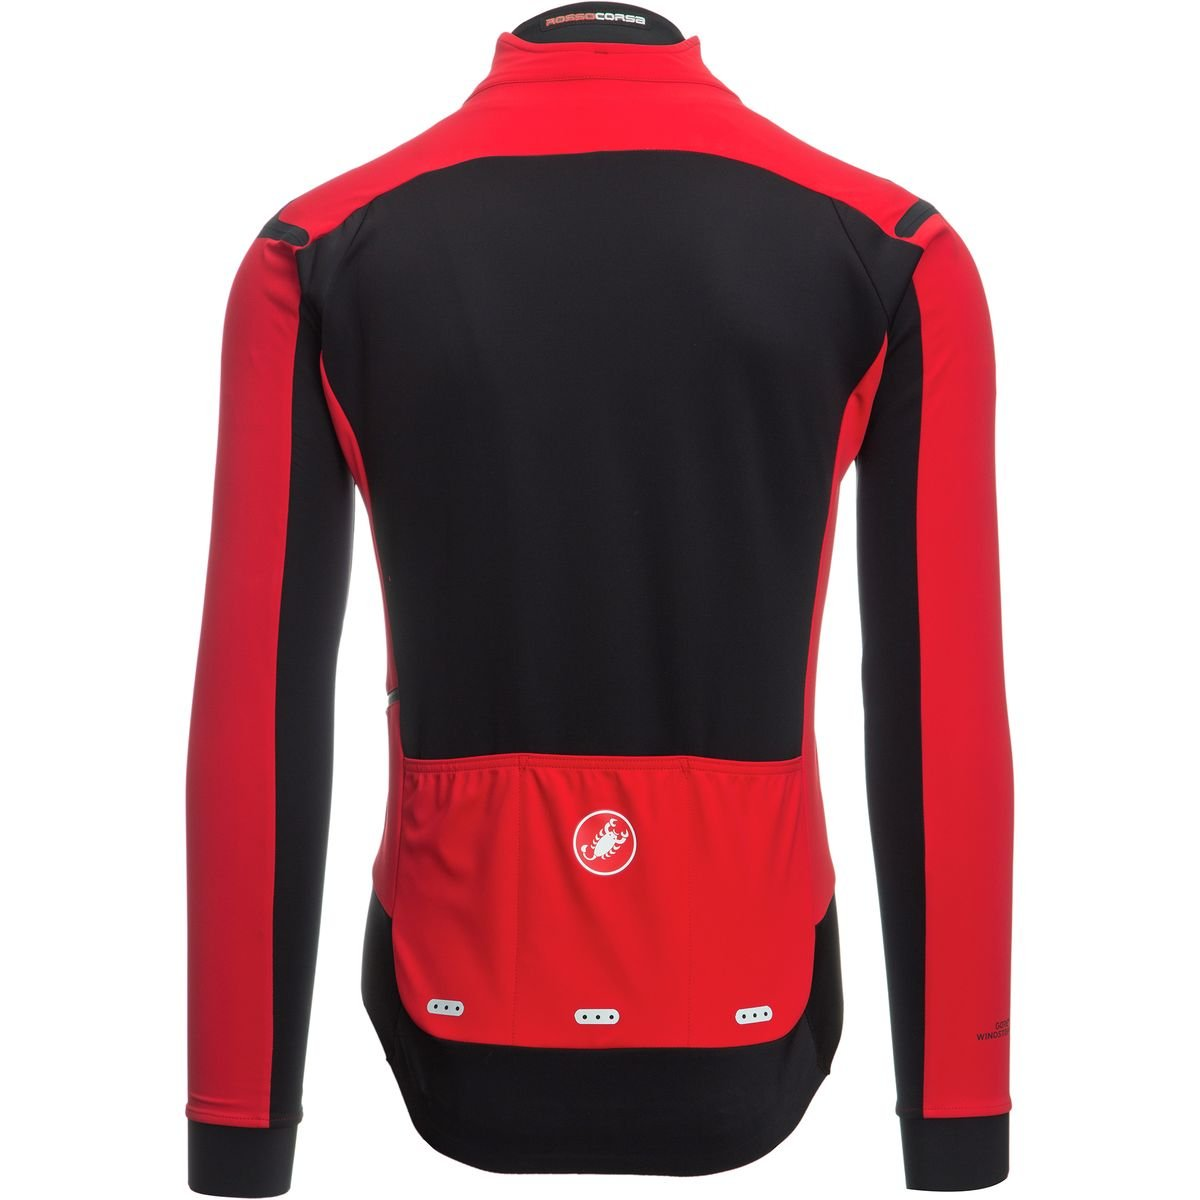 cde2bf6f3 Amazon.com   Castelli Alpha ROS Limited Edition Jersey - Men s Red Black